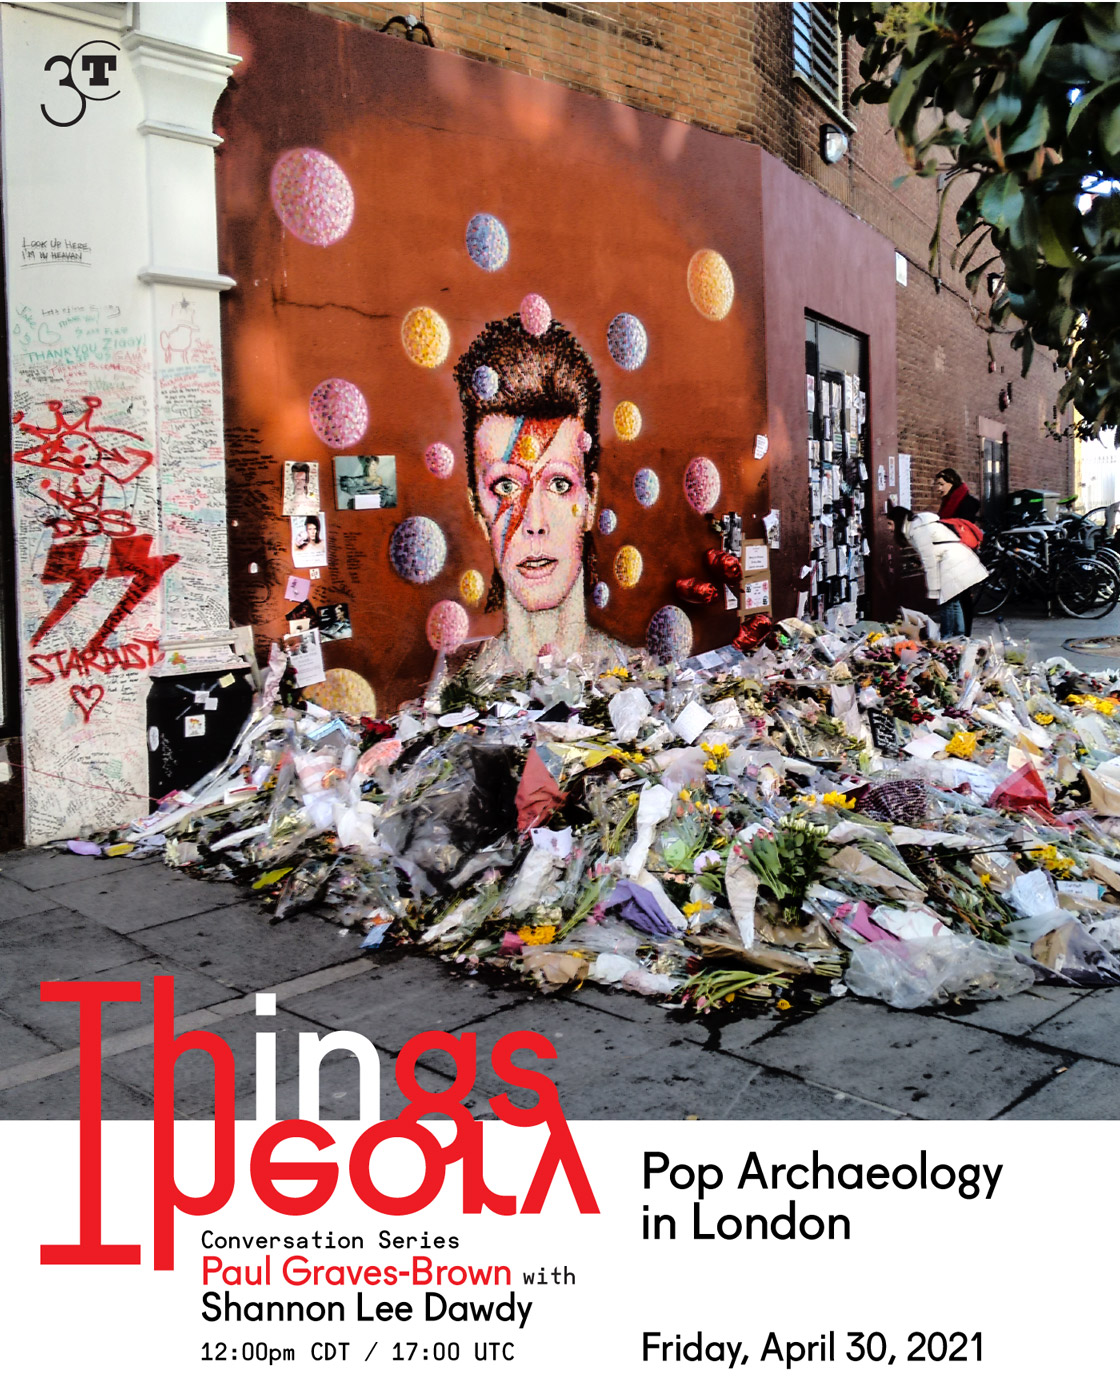 Poster with event details and image of mural of David Bowie with pile of flower bouquets on the ground in front of it